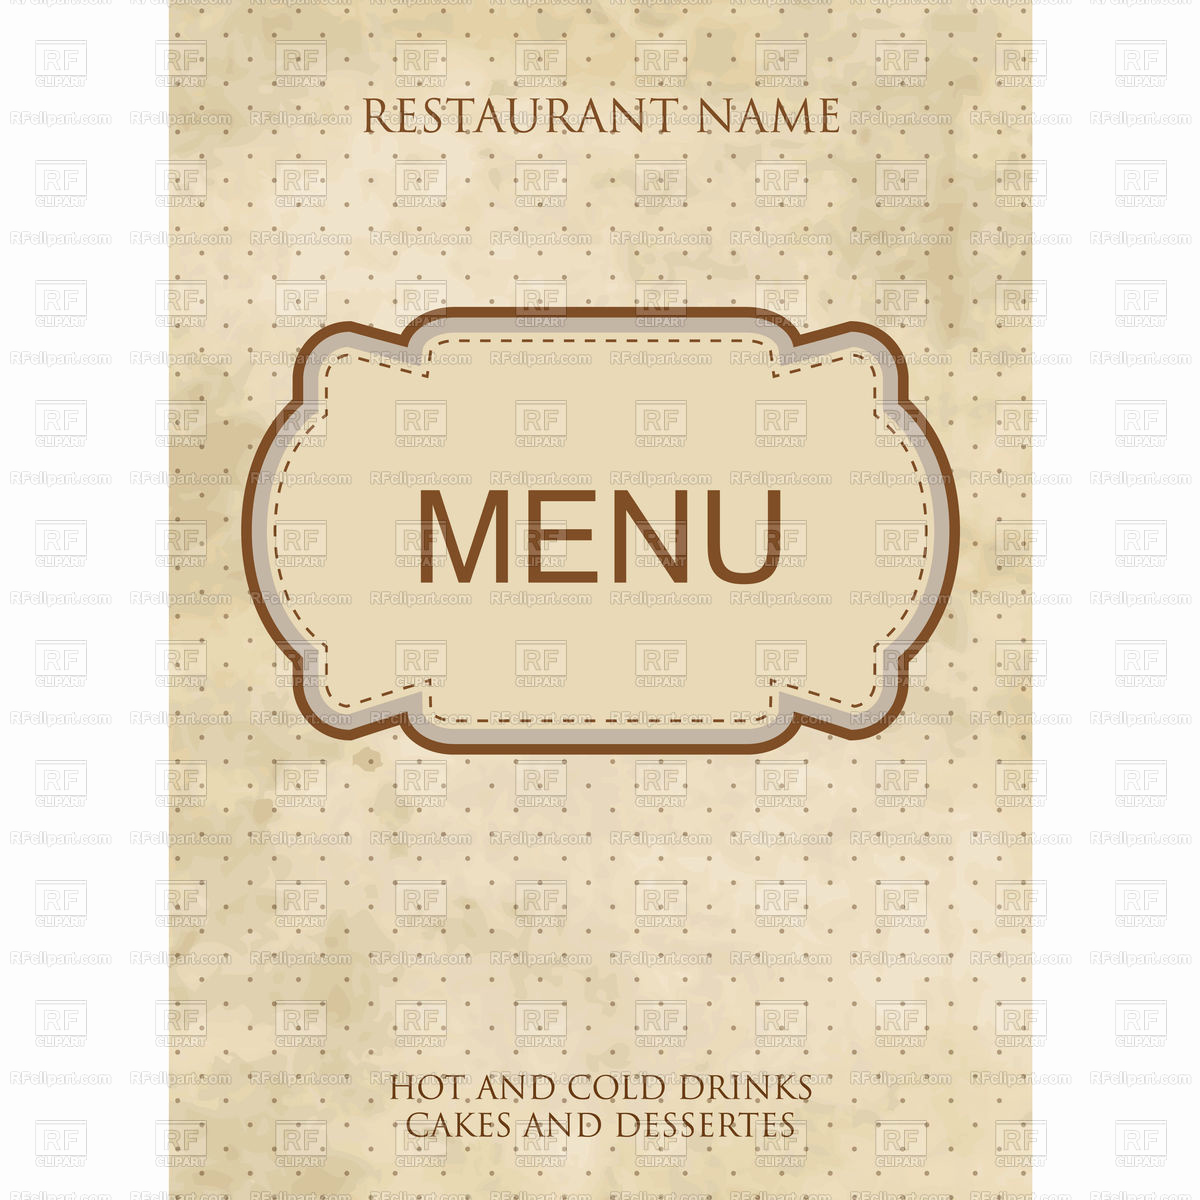 Fancy Restaurant Menu Template Beautiful Vintage Style Restaurant or Cafe Menu Design with Fancy